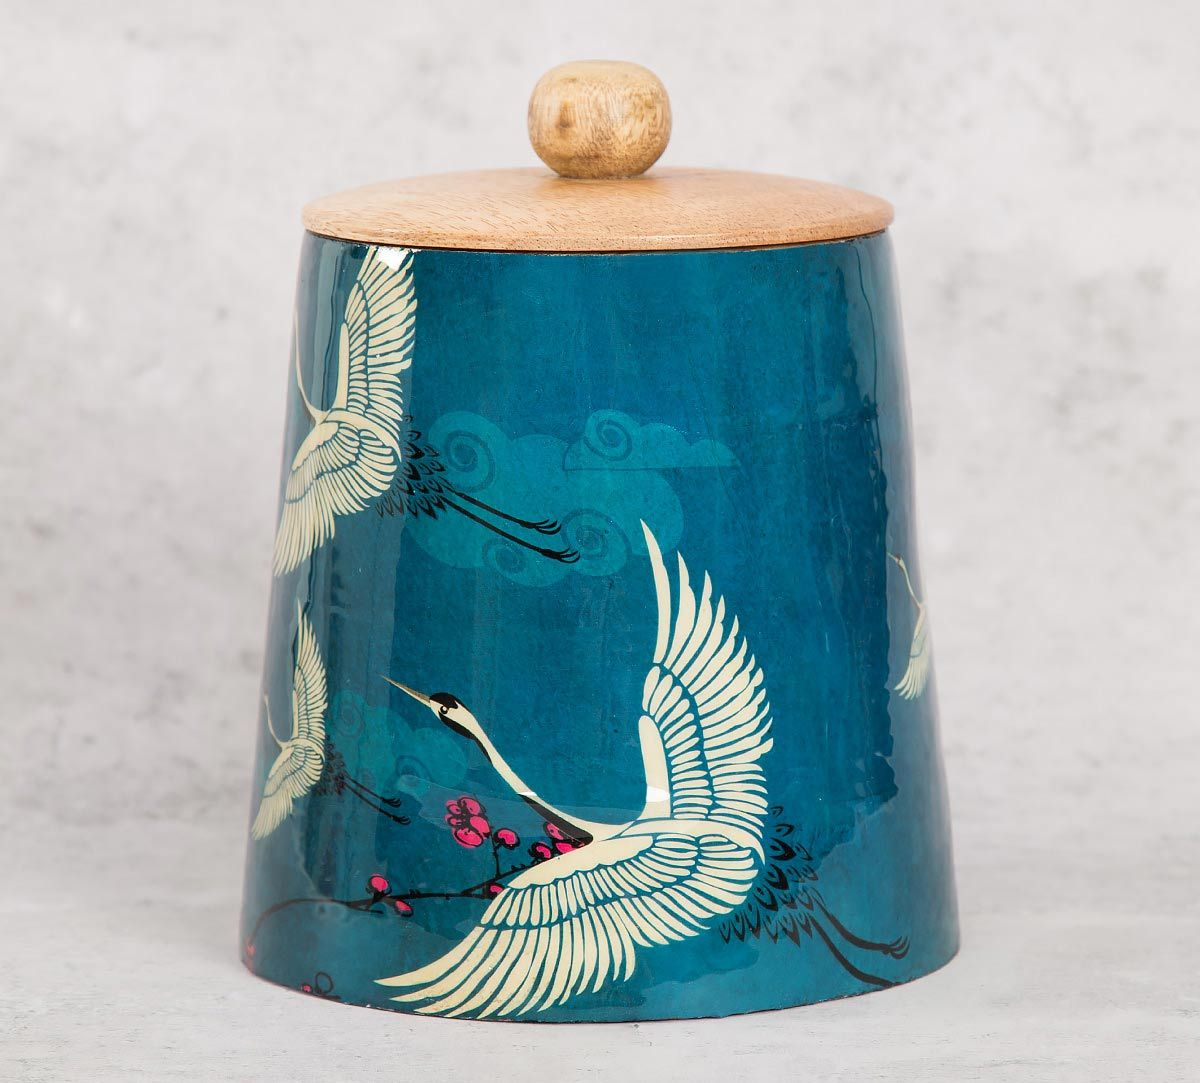 India Circus Legend of the Cranes Wooden Jar